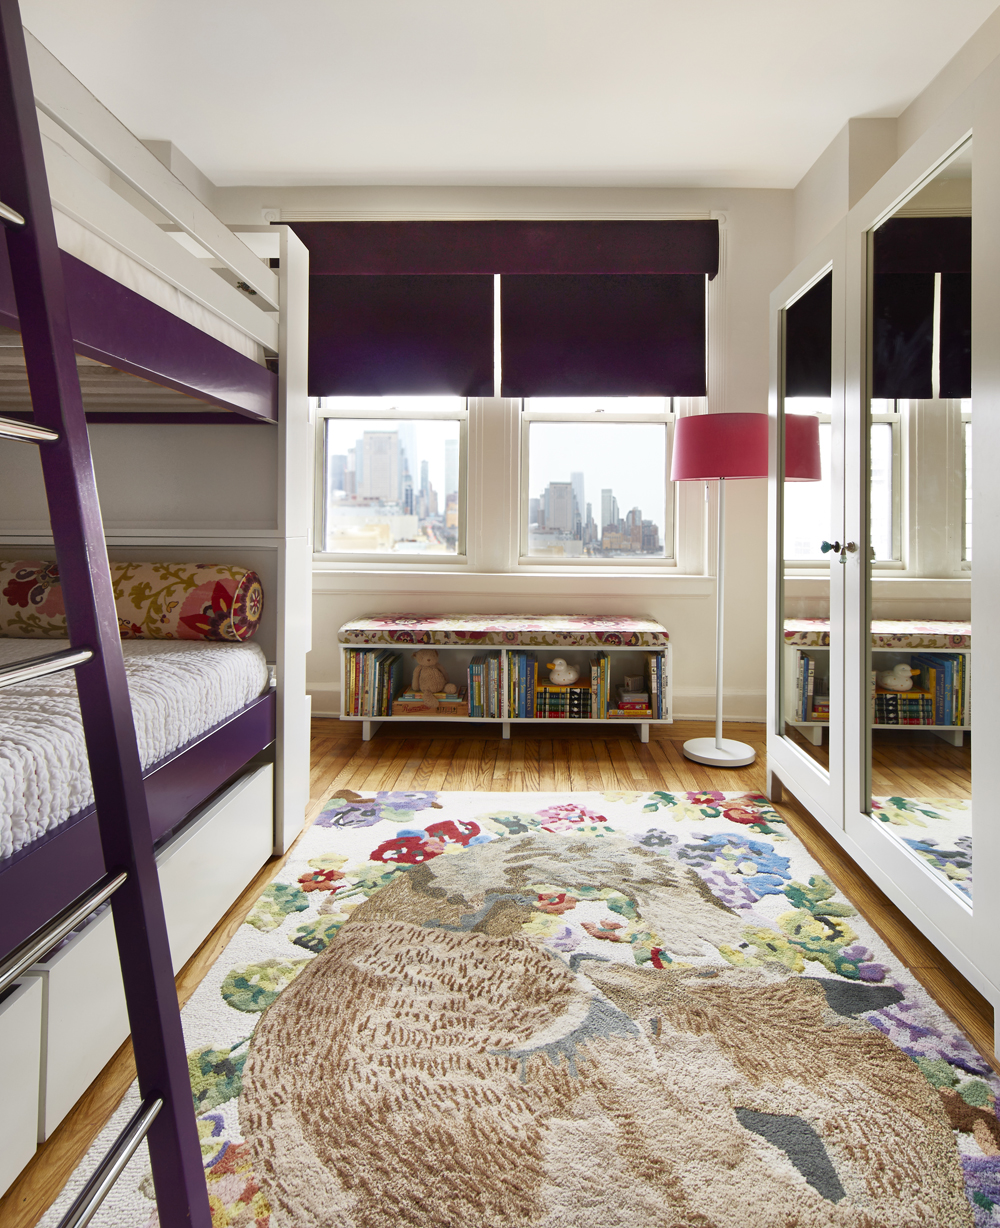 Purple-Bunk-Bed-Kids-Room-Colorful-JMorrisDesign-Brooklyn-Interior-Designer.jpg